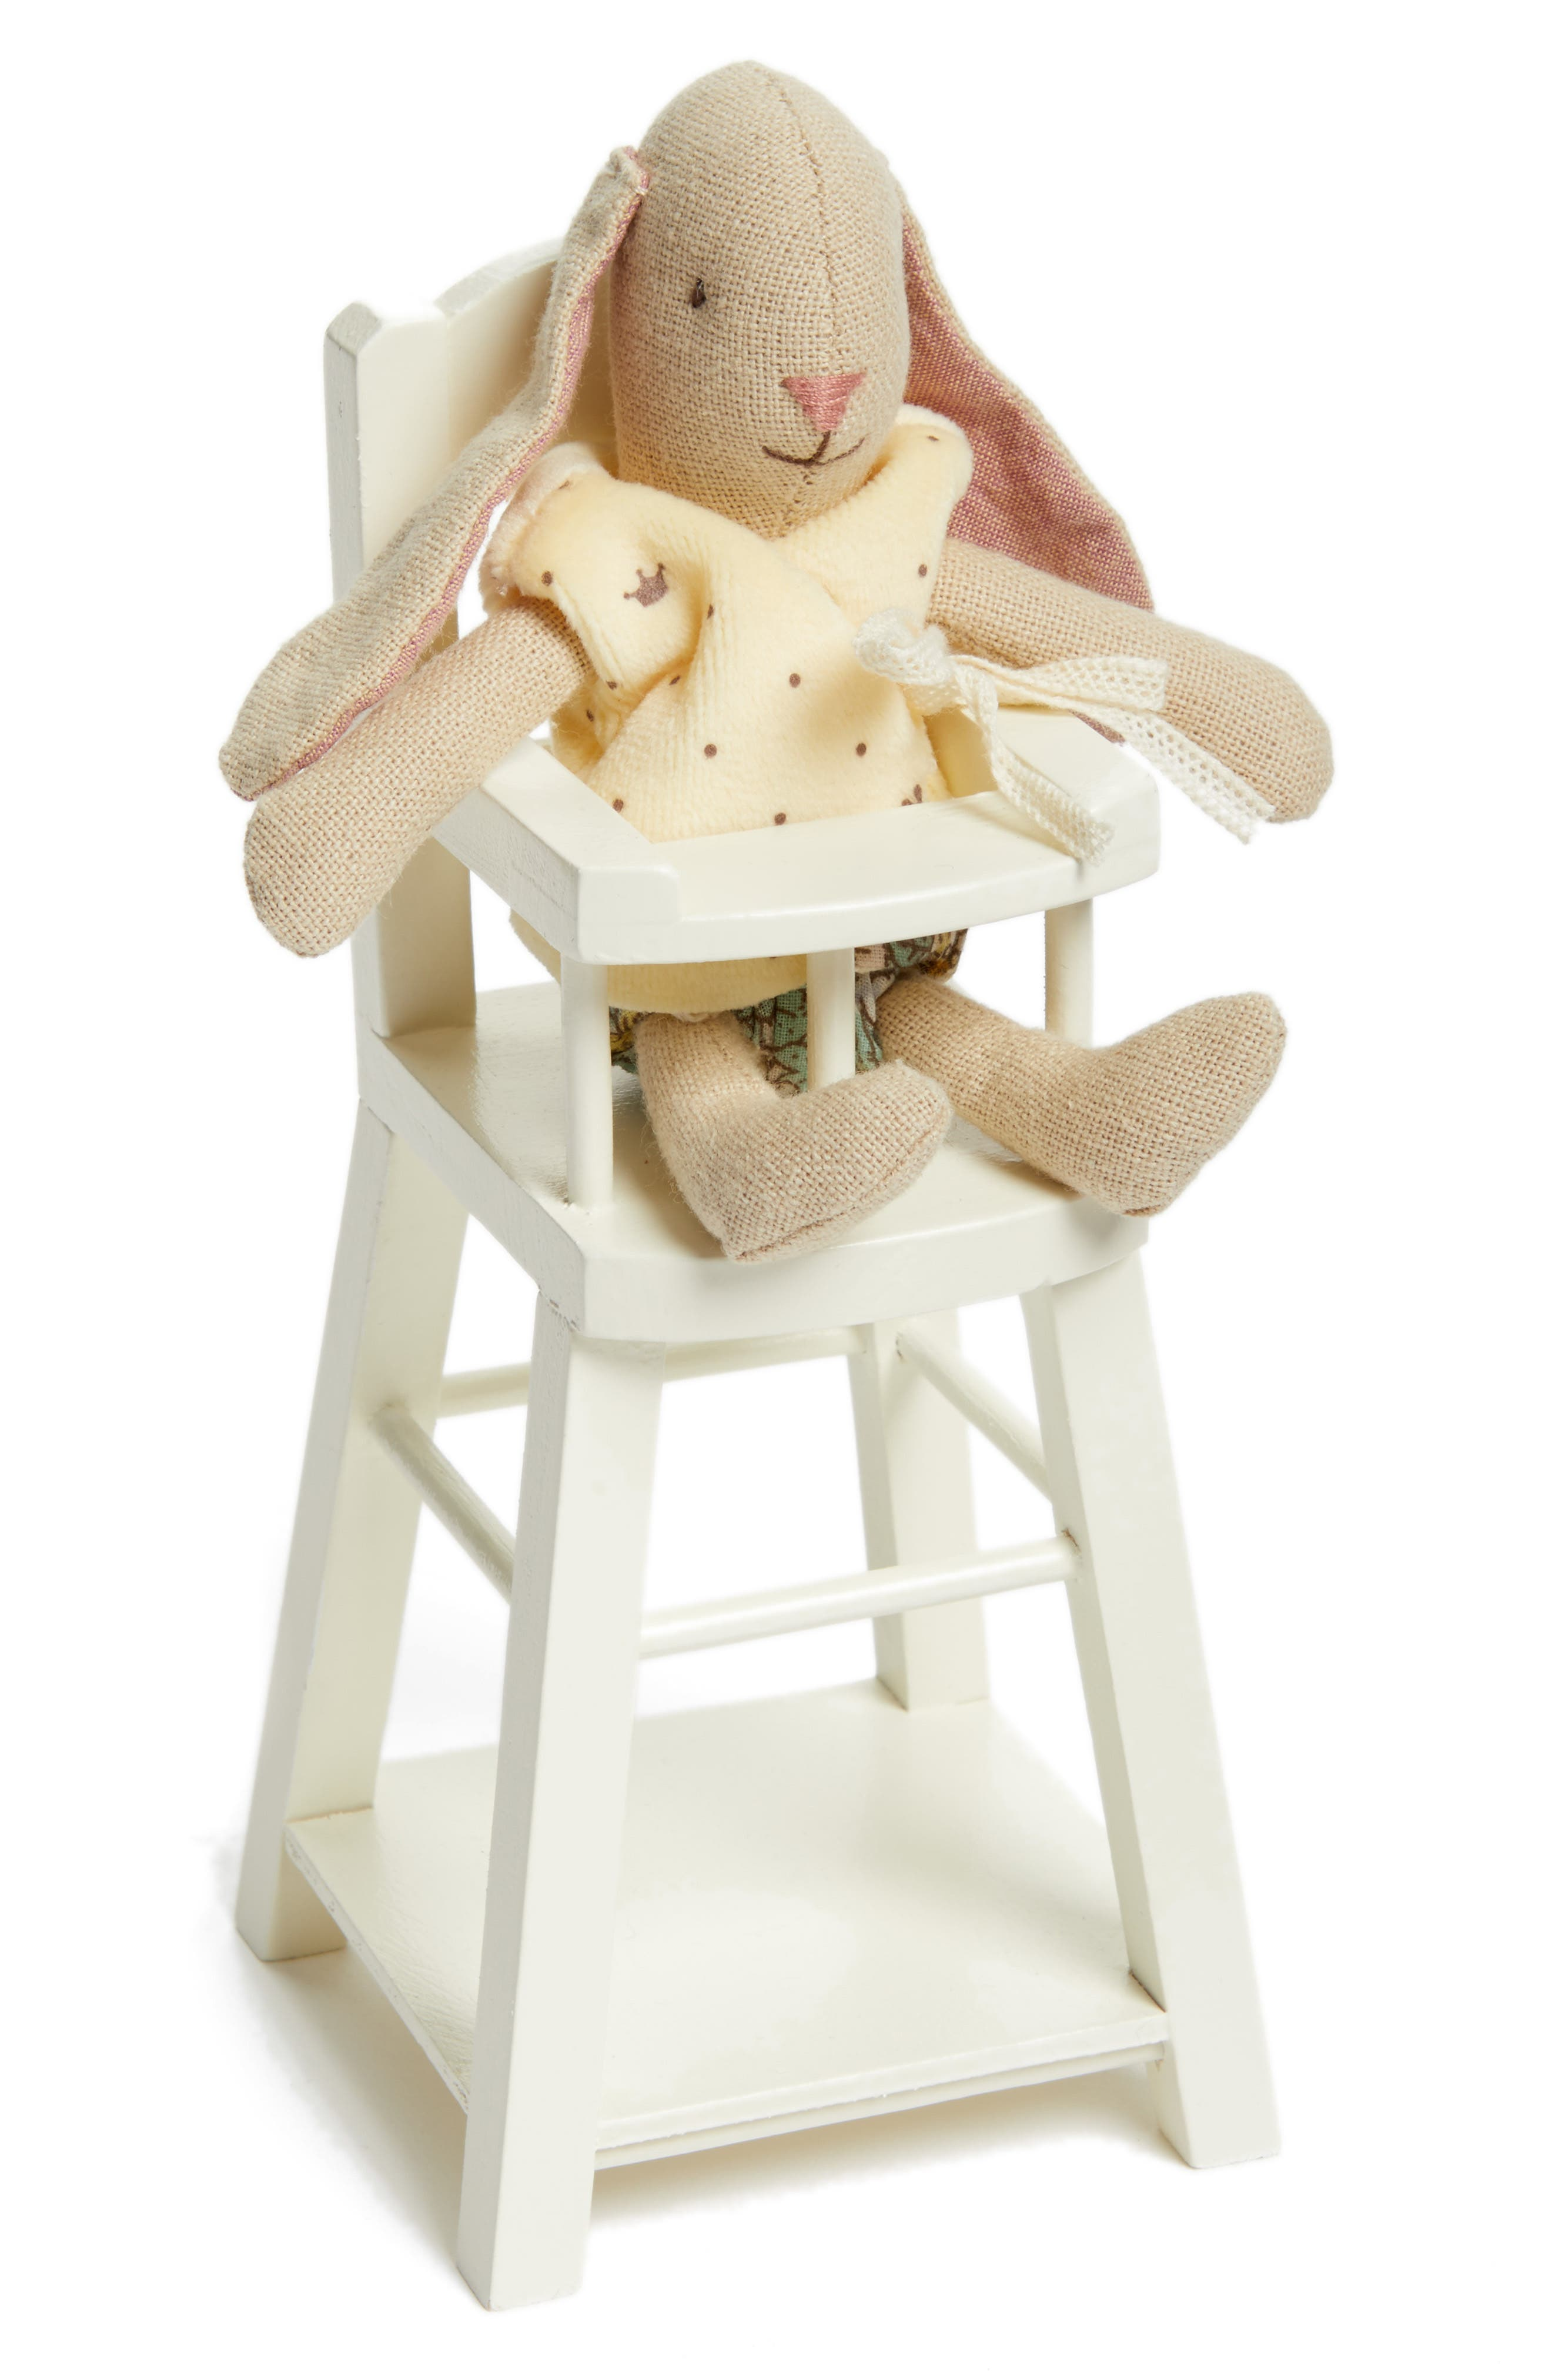 Alternate Image 1 Selected - Maileg Micro Bunny Rabbit Stuffed Animal and Highchair